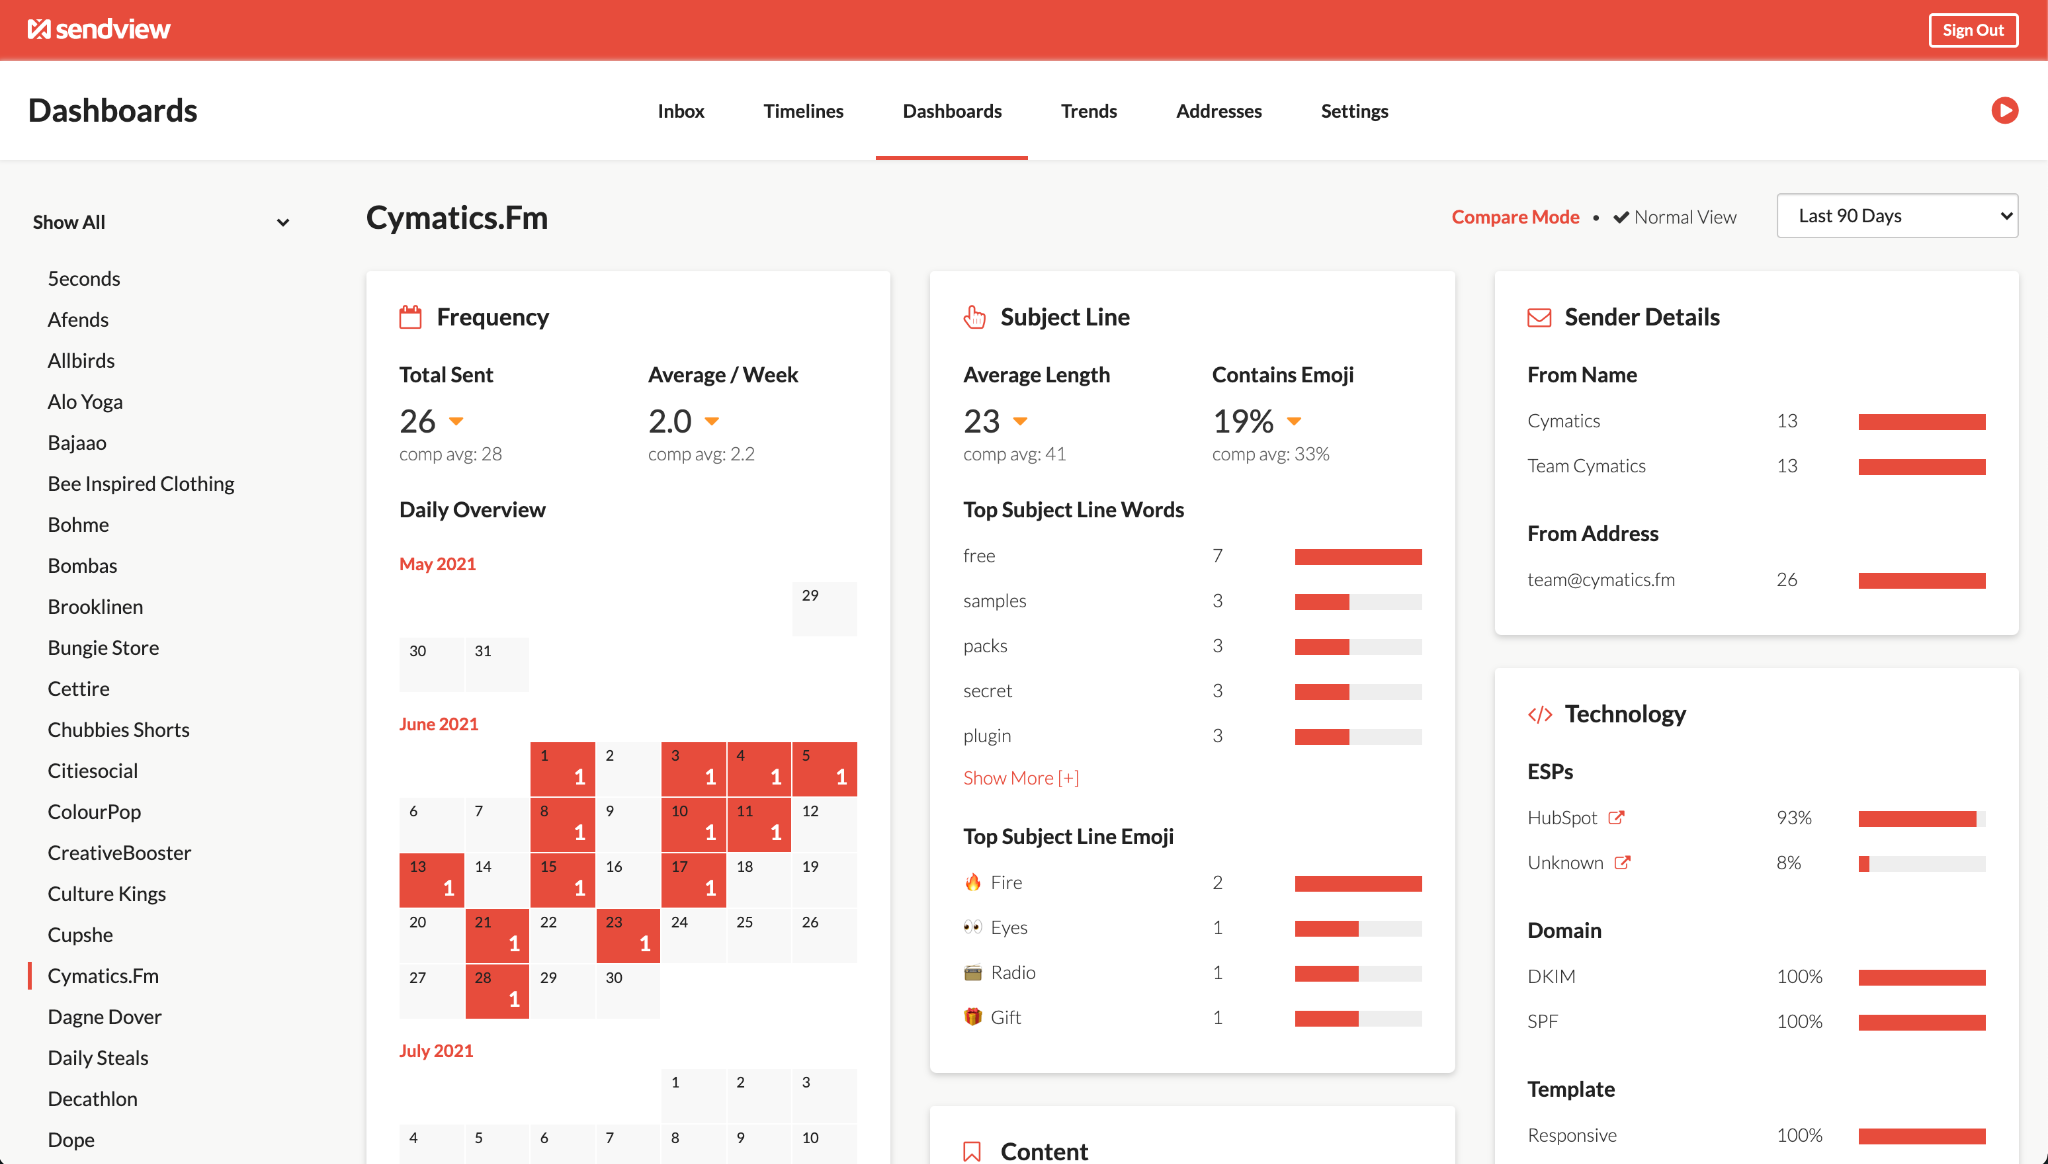 SendView's Dashboard view